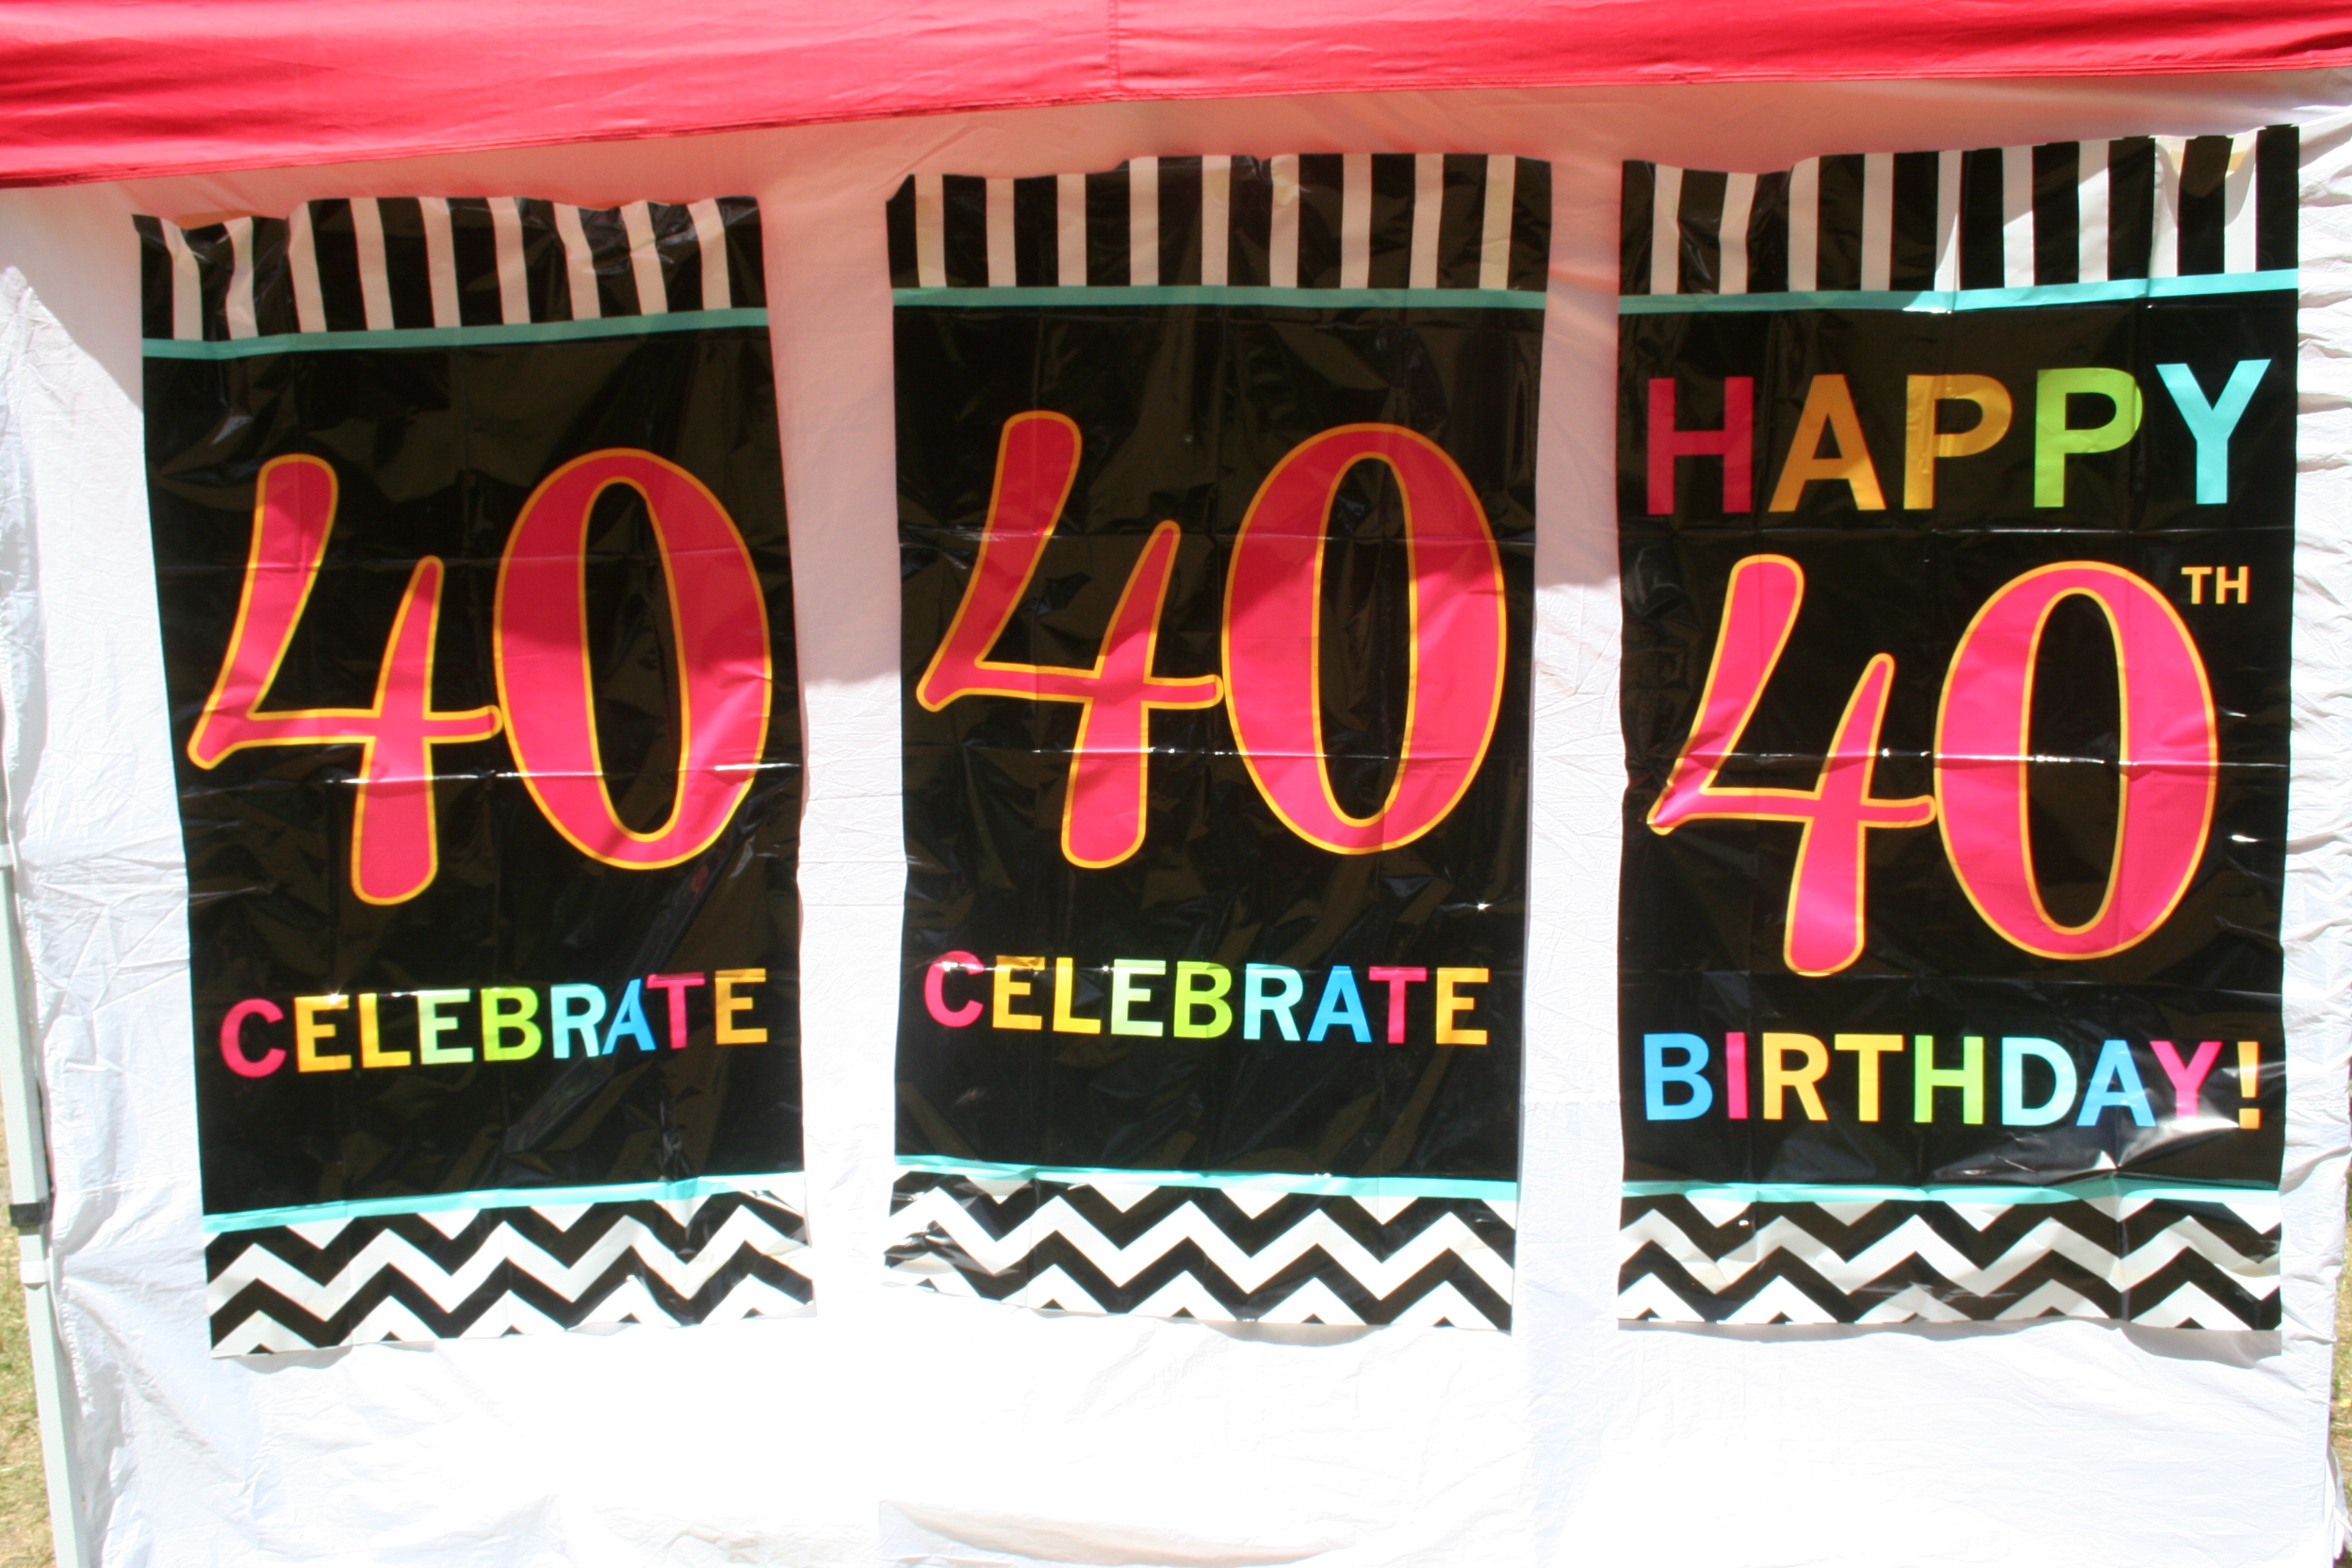 We Celebrated 40 Years of Changing Lives at This Year's Family Picnic!